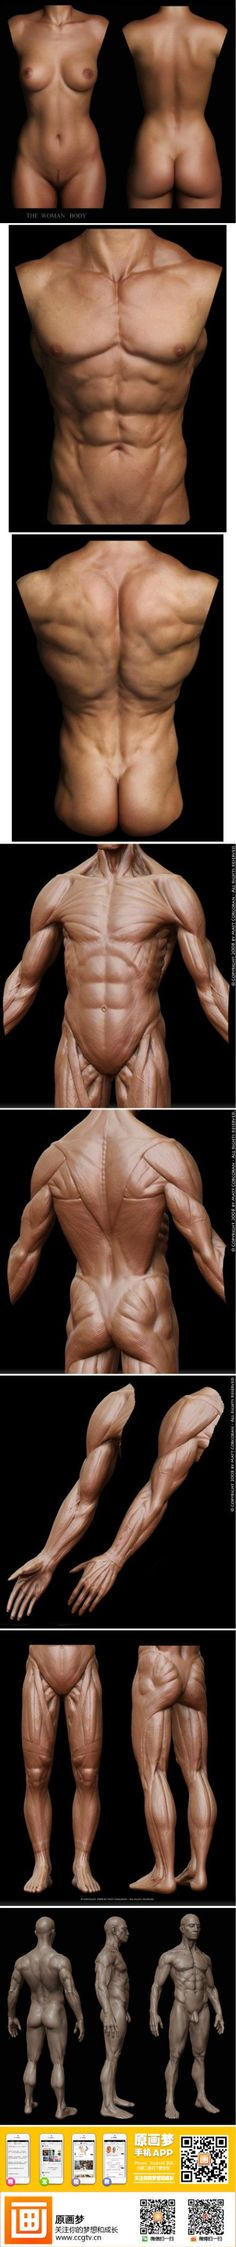 These models are really pushing the limits. I like the knowledge of anatomy and the attention to detail.